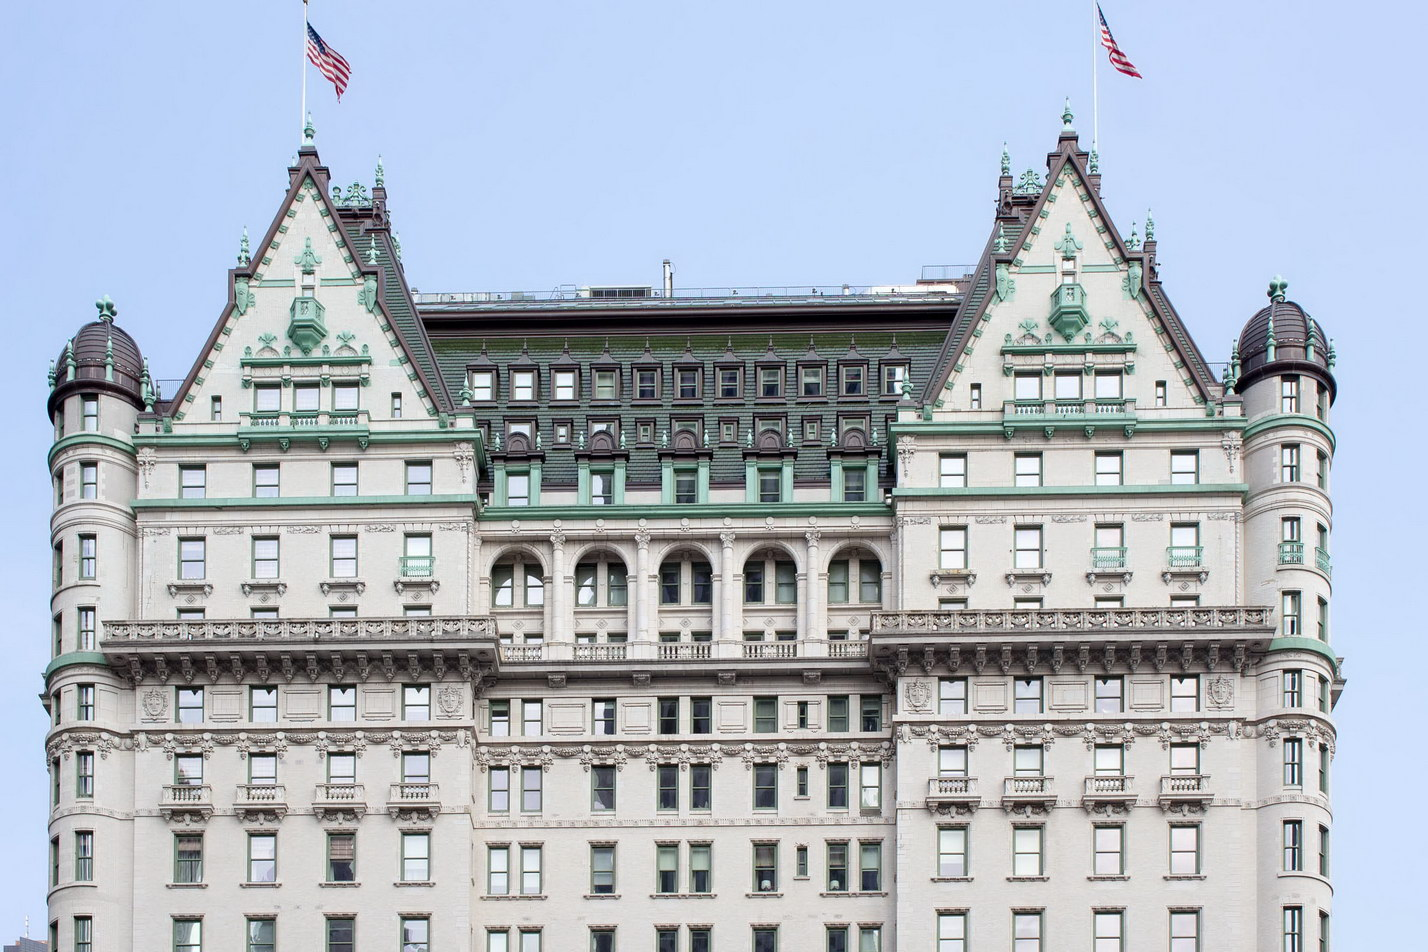 A fantastic mansard roof crowns Plaza Hotel, underscored by tiers of balustrades and terra cotta.